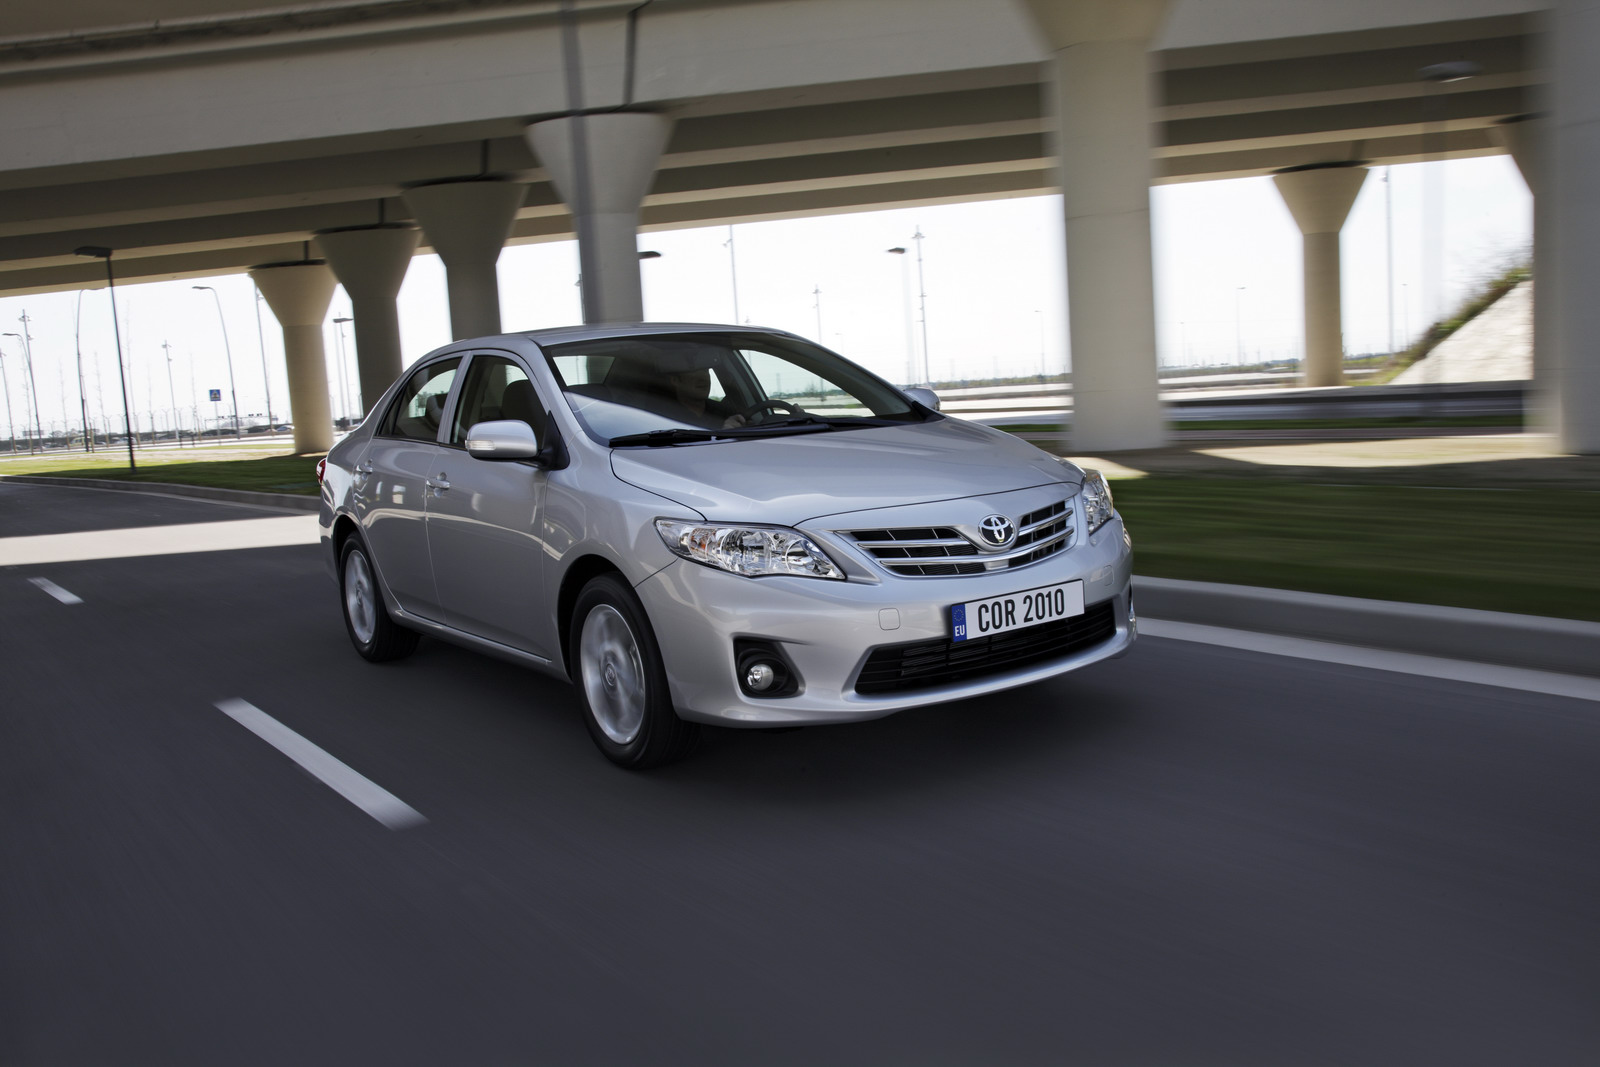 The new Toyota Corolla features for the Japanese market